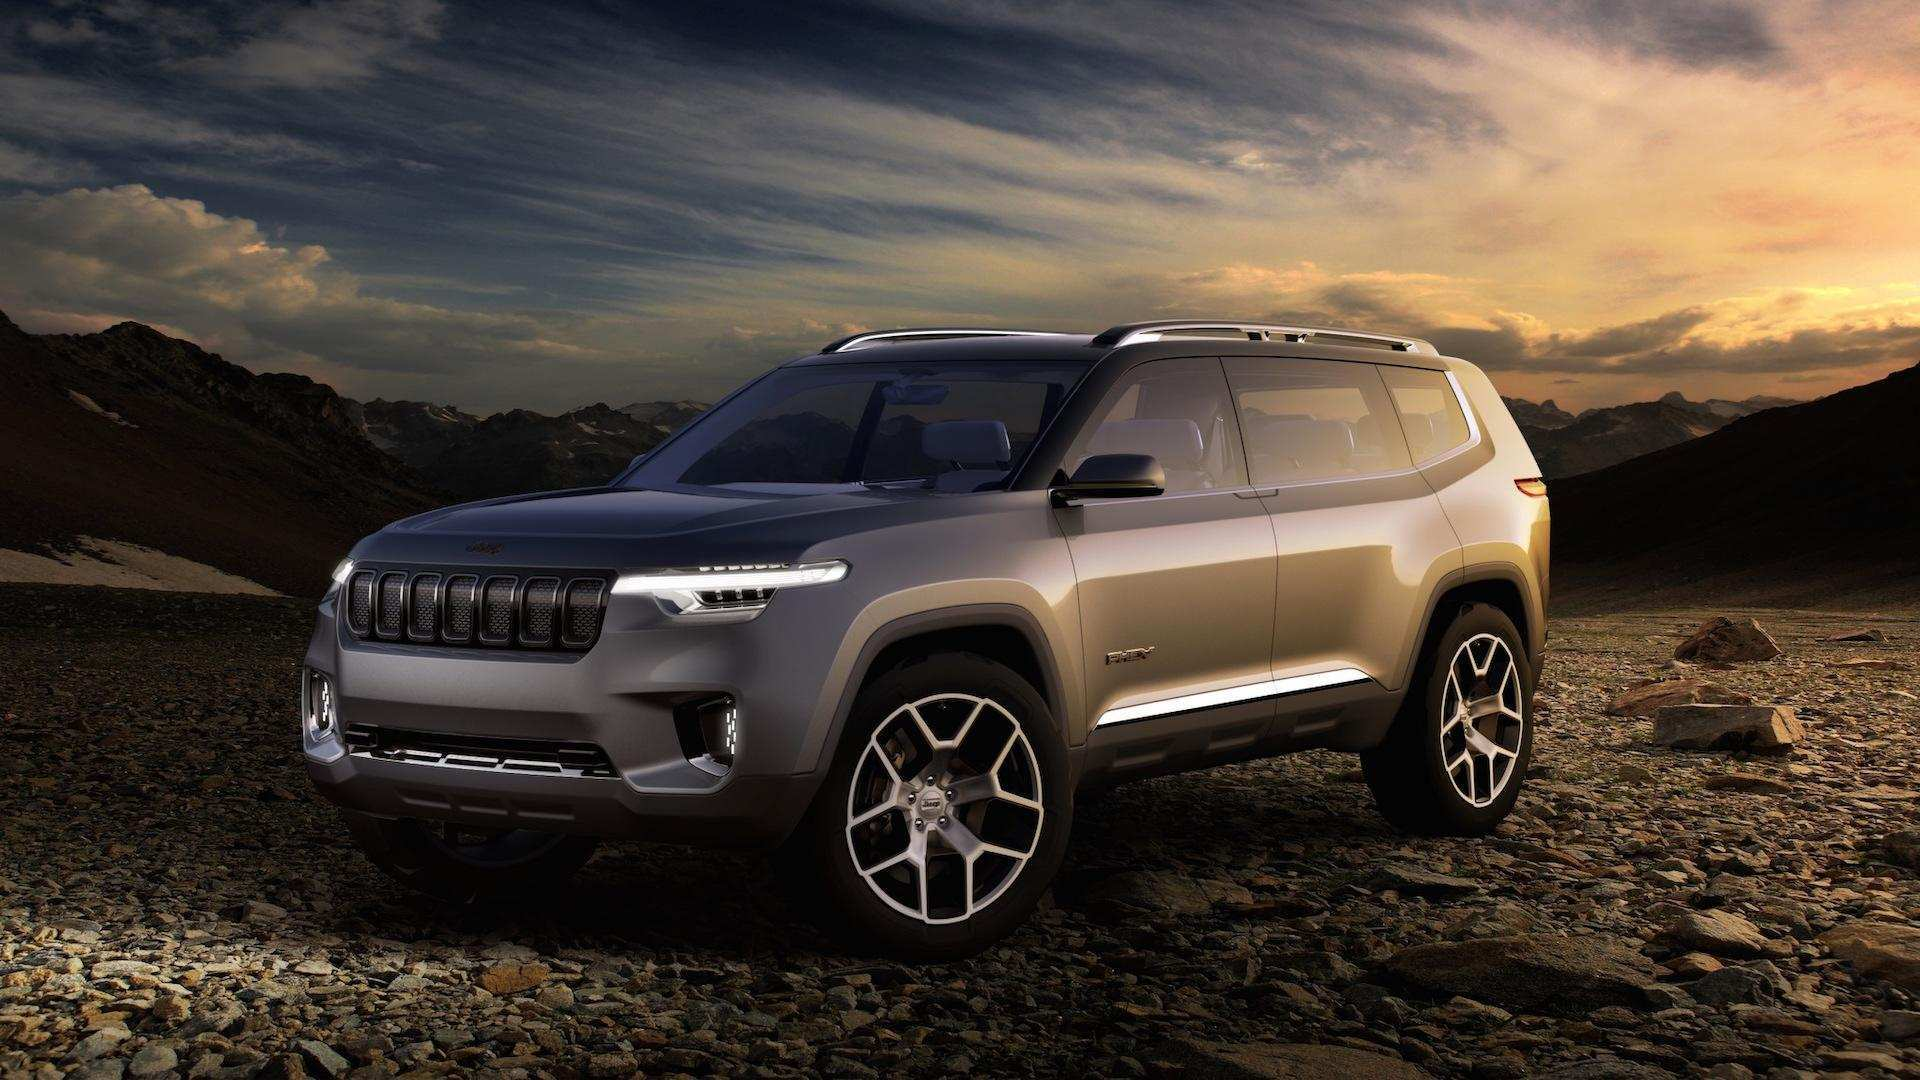 76 Concept of Jeep Grand Cherokee 2020 Spy Shots New Review for Jeep Grand Cherokee 2020 Spy Shots